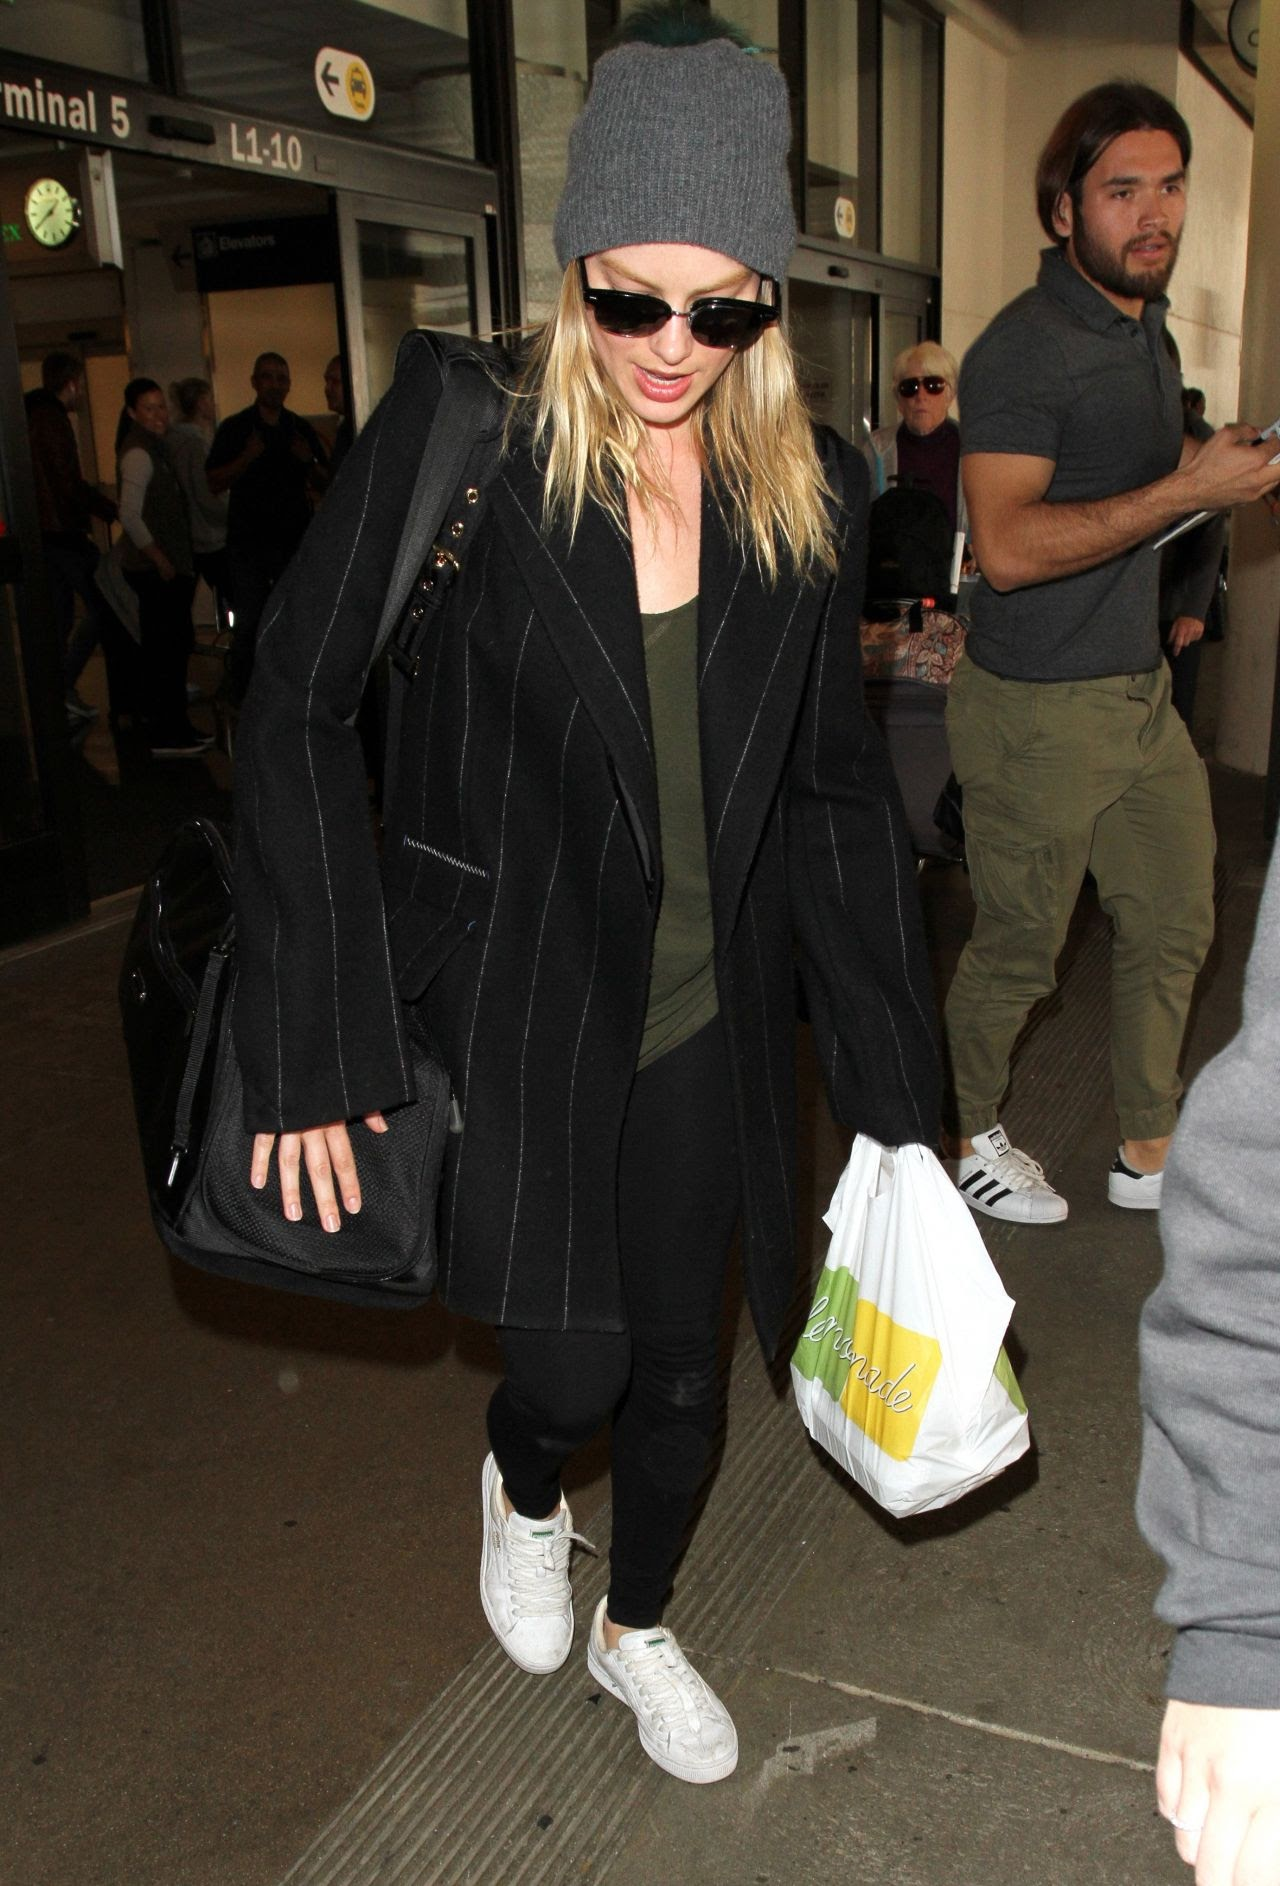 Margot Robbie came to Los Angeles